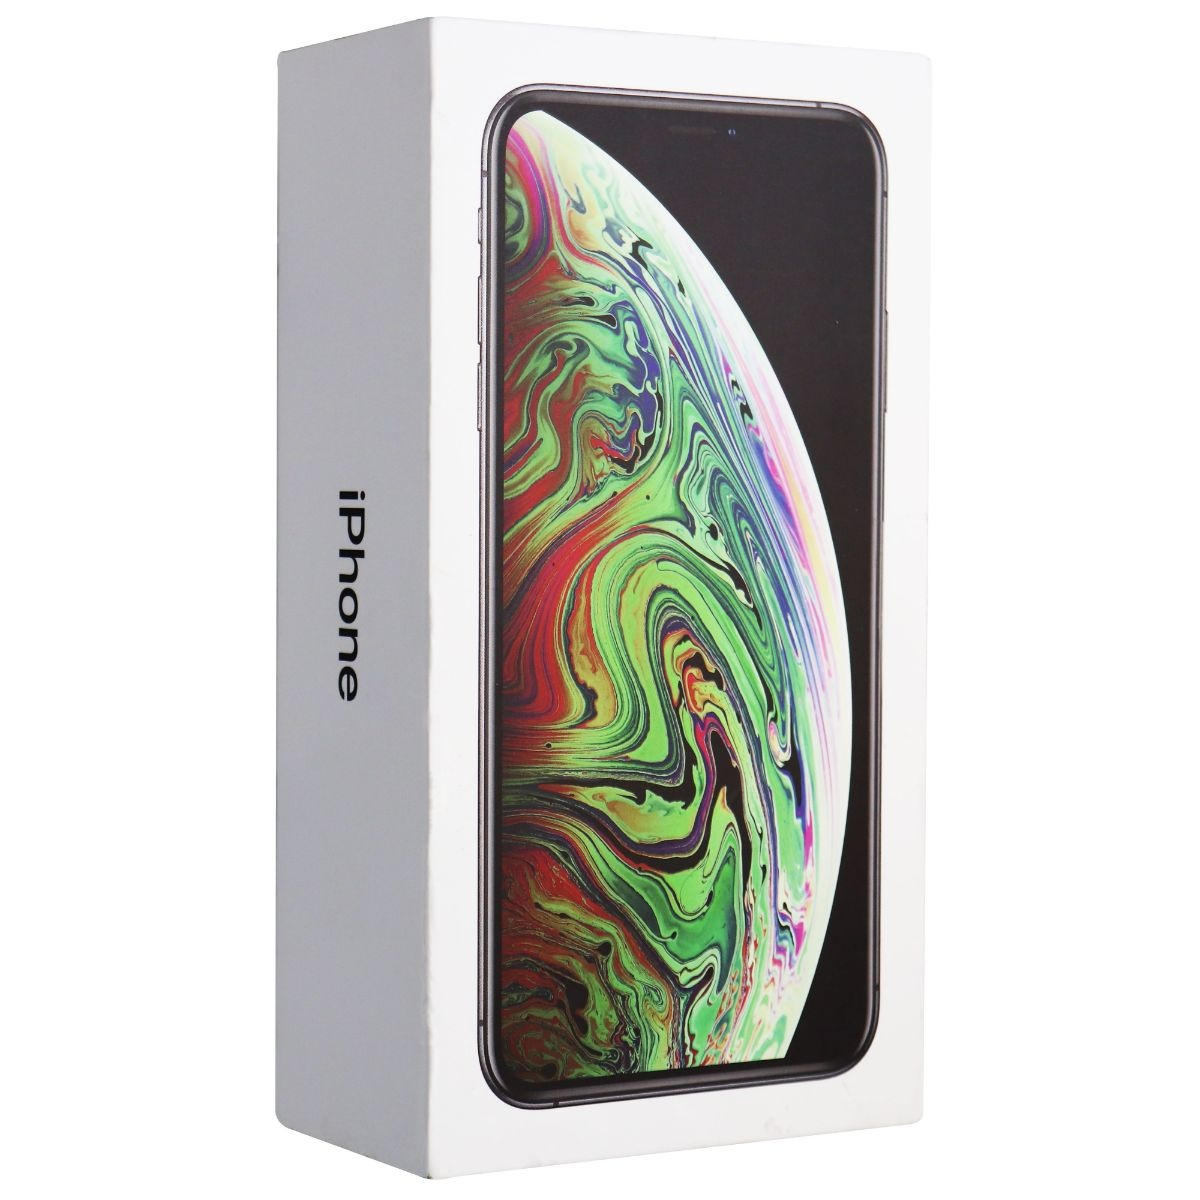 RETAIL BOX - Apple iPhone Xs Max - 256GB / Space Gray - NO DEVICE